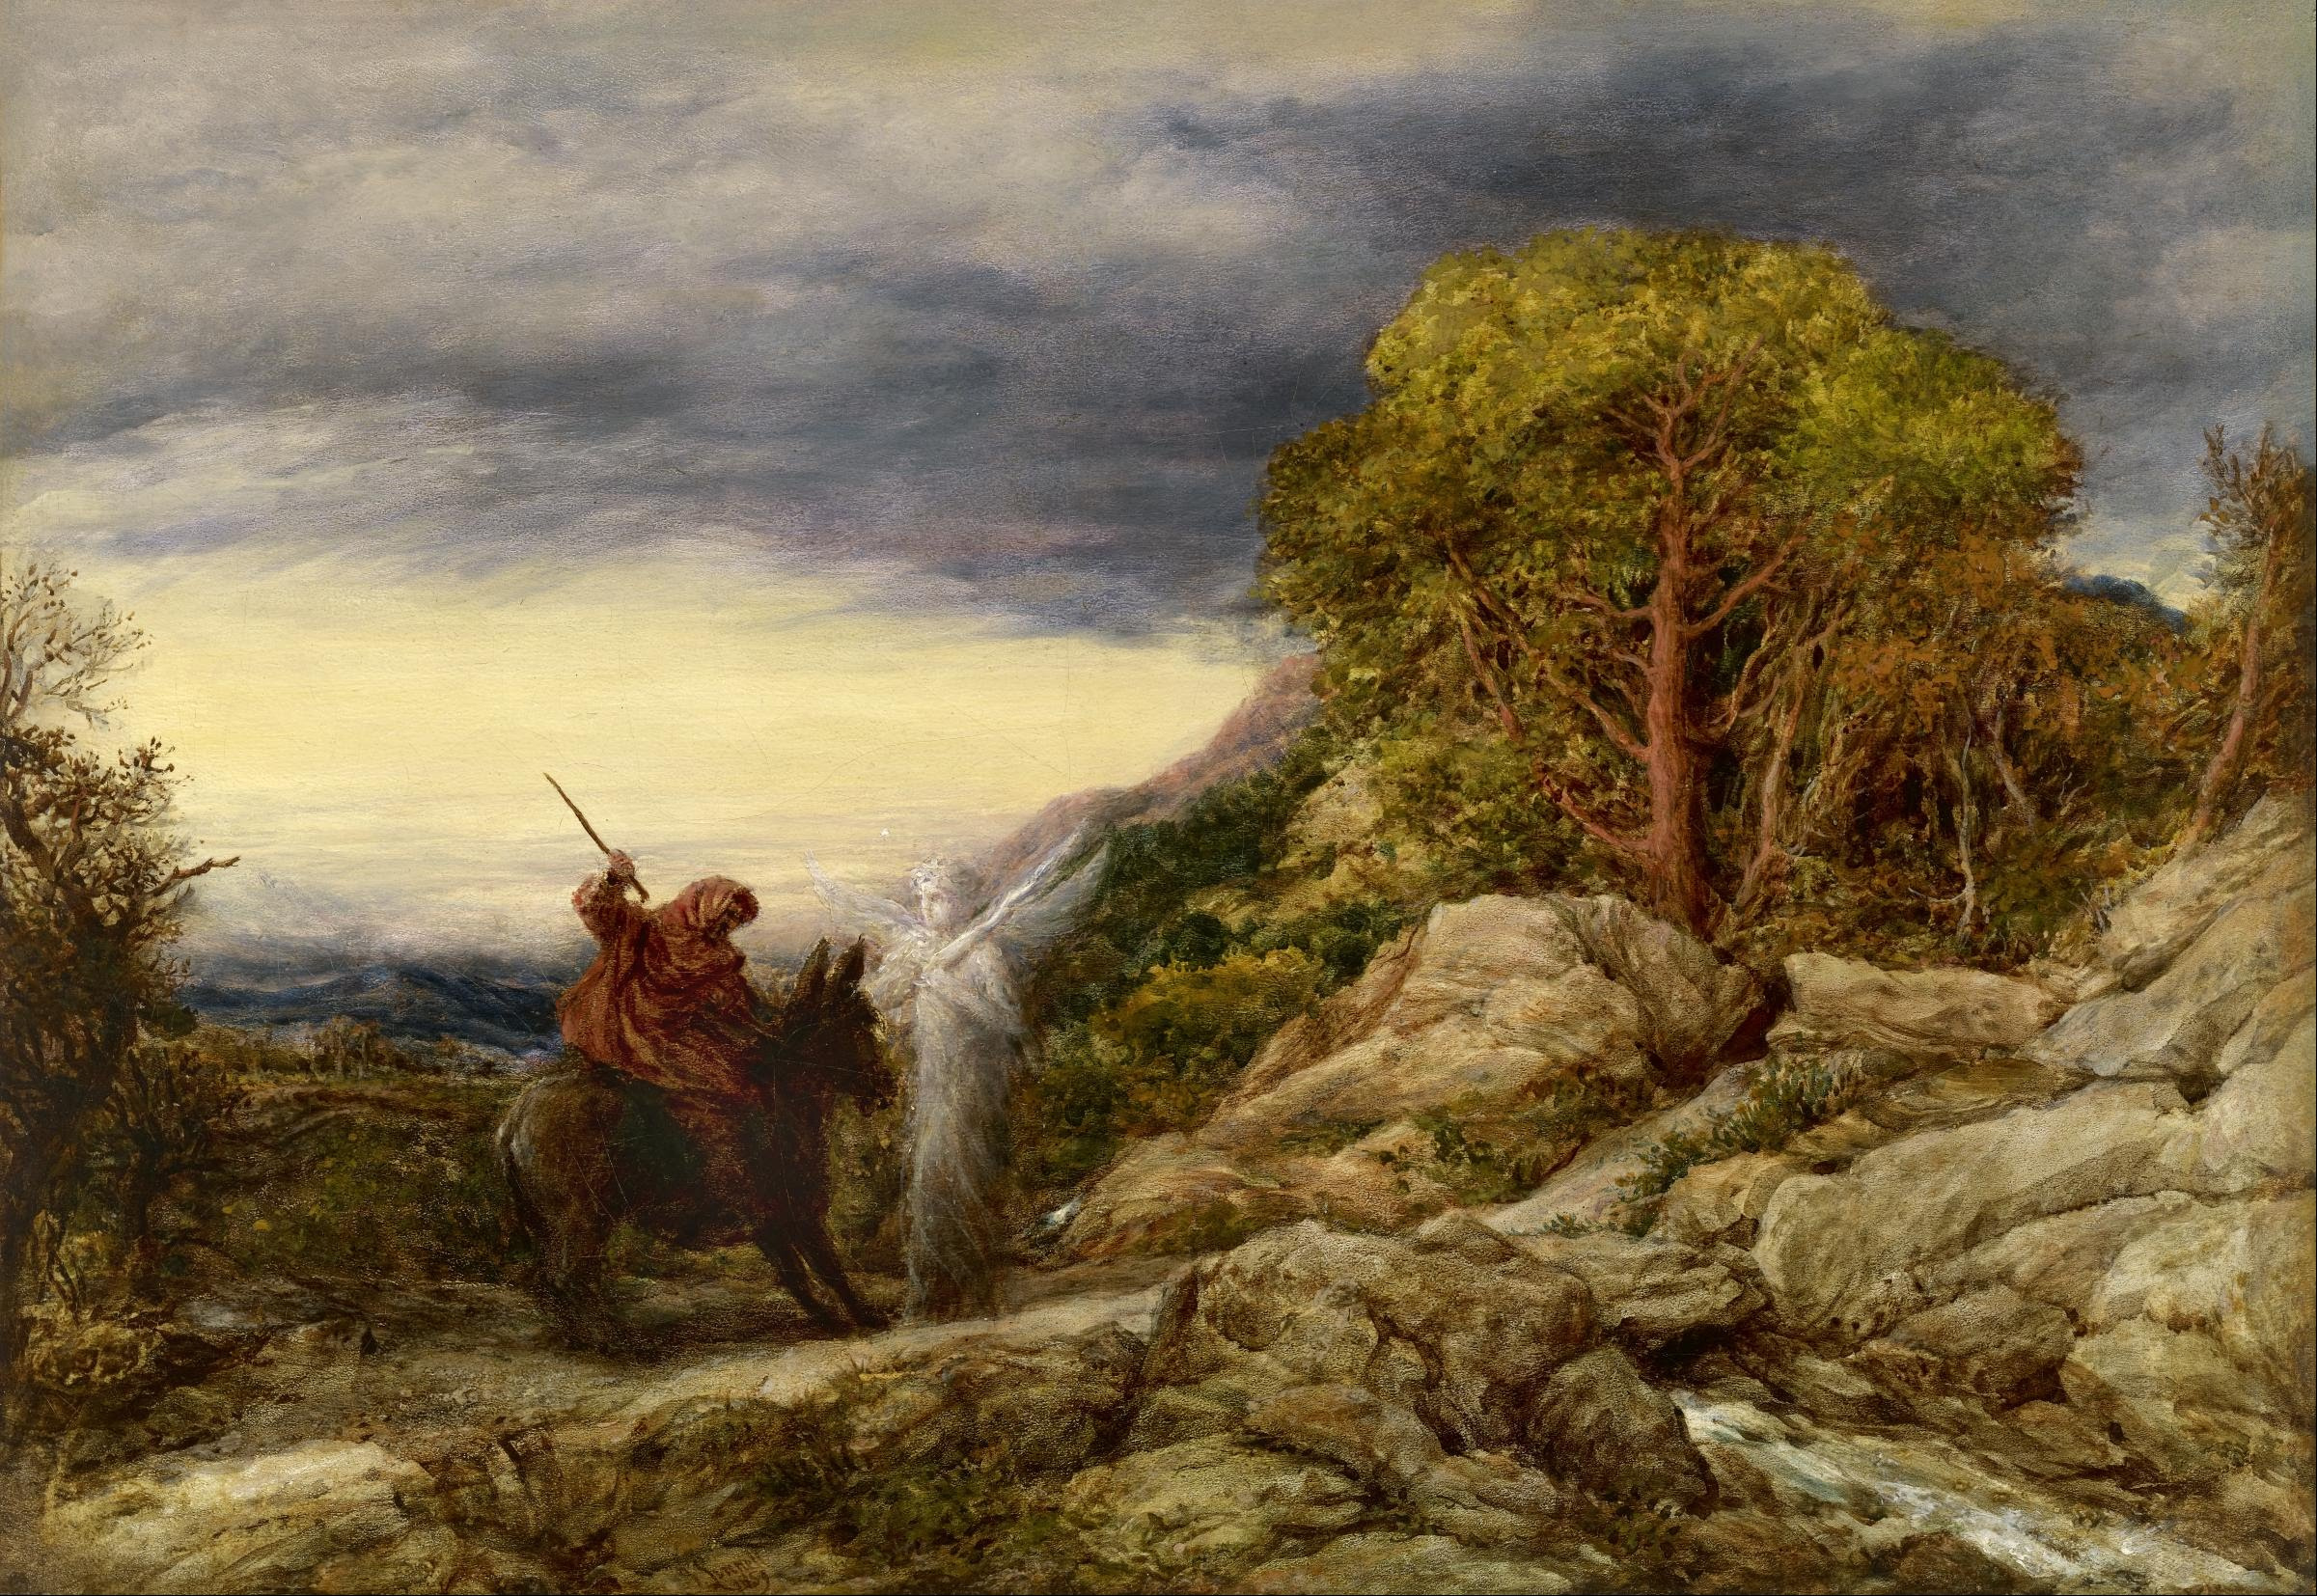 John_Linnell_-_The_Prophet_Balaam_and_the_Angel_-_Google_Art_Project